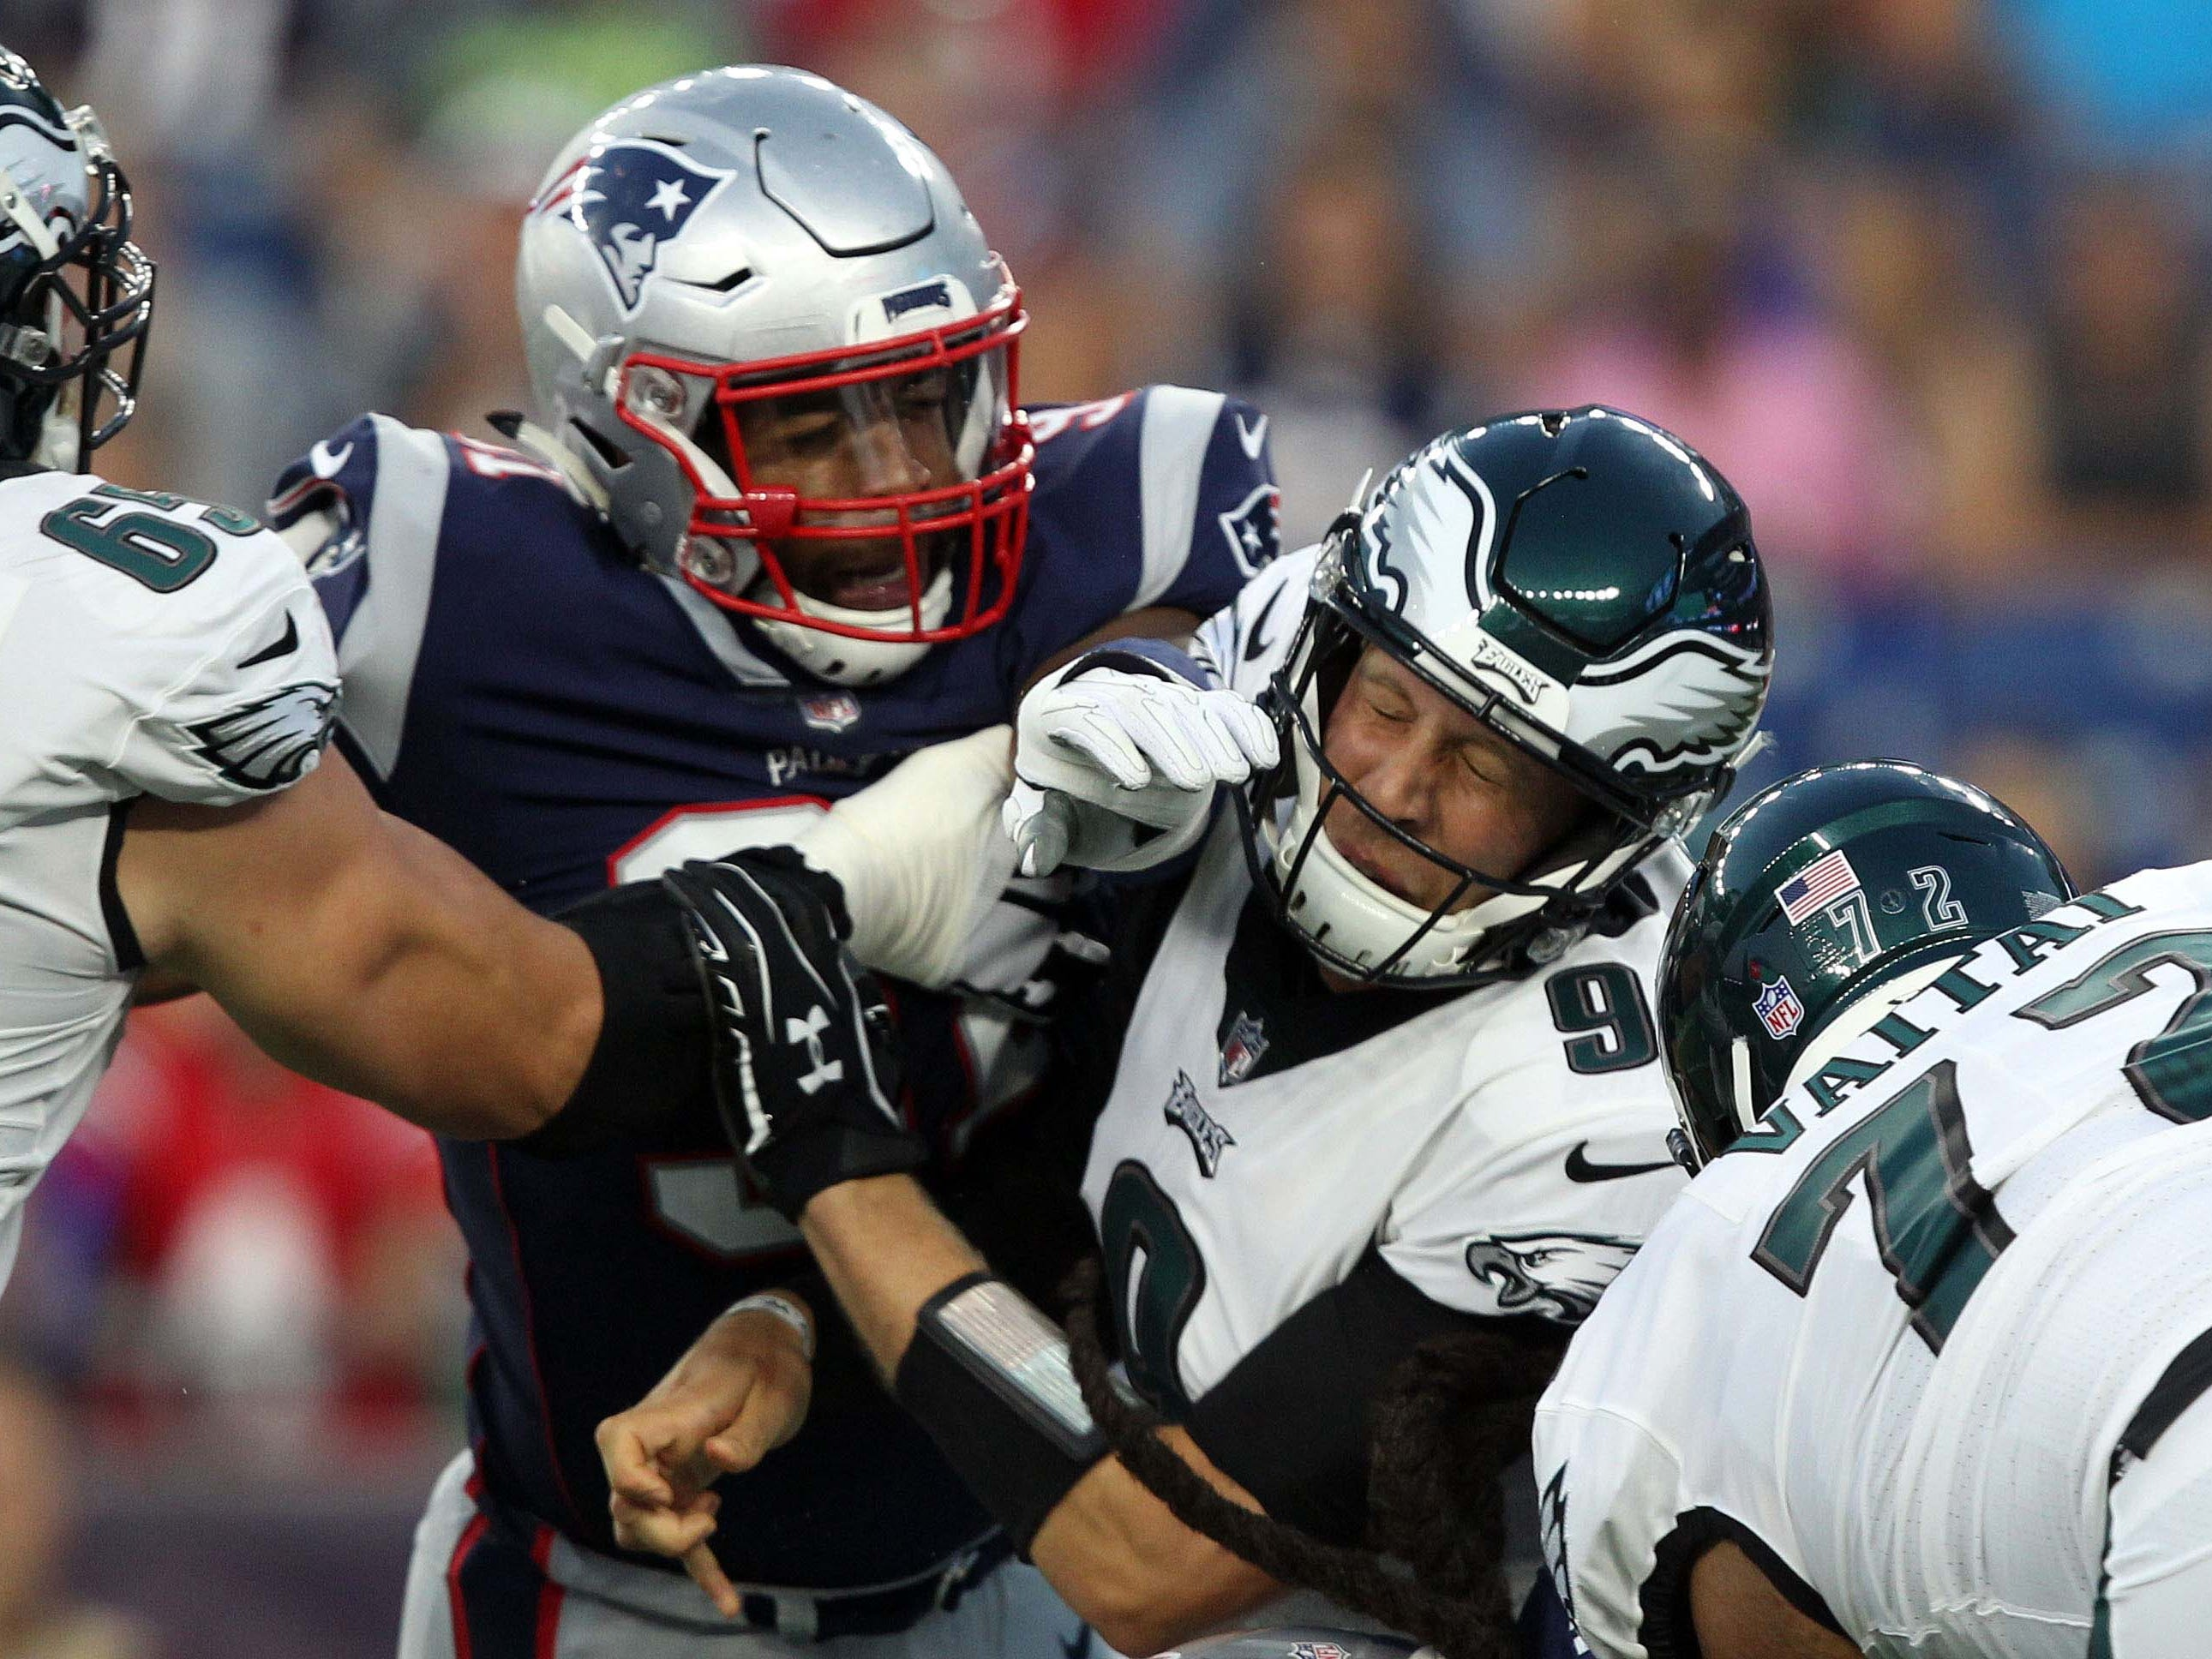 New England Patriots defensive end Deatrich Wise Jr. pressures Philadelphia Eagles quarterback Nick Foles during the first quarter at Gillette Stadium.